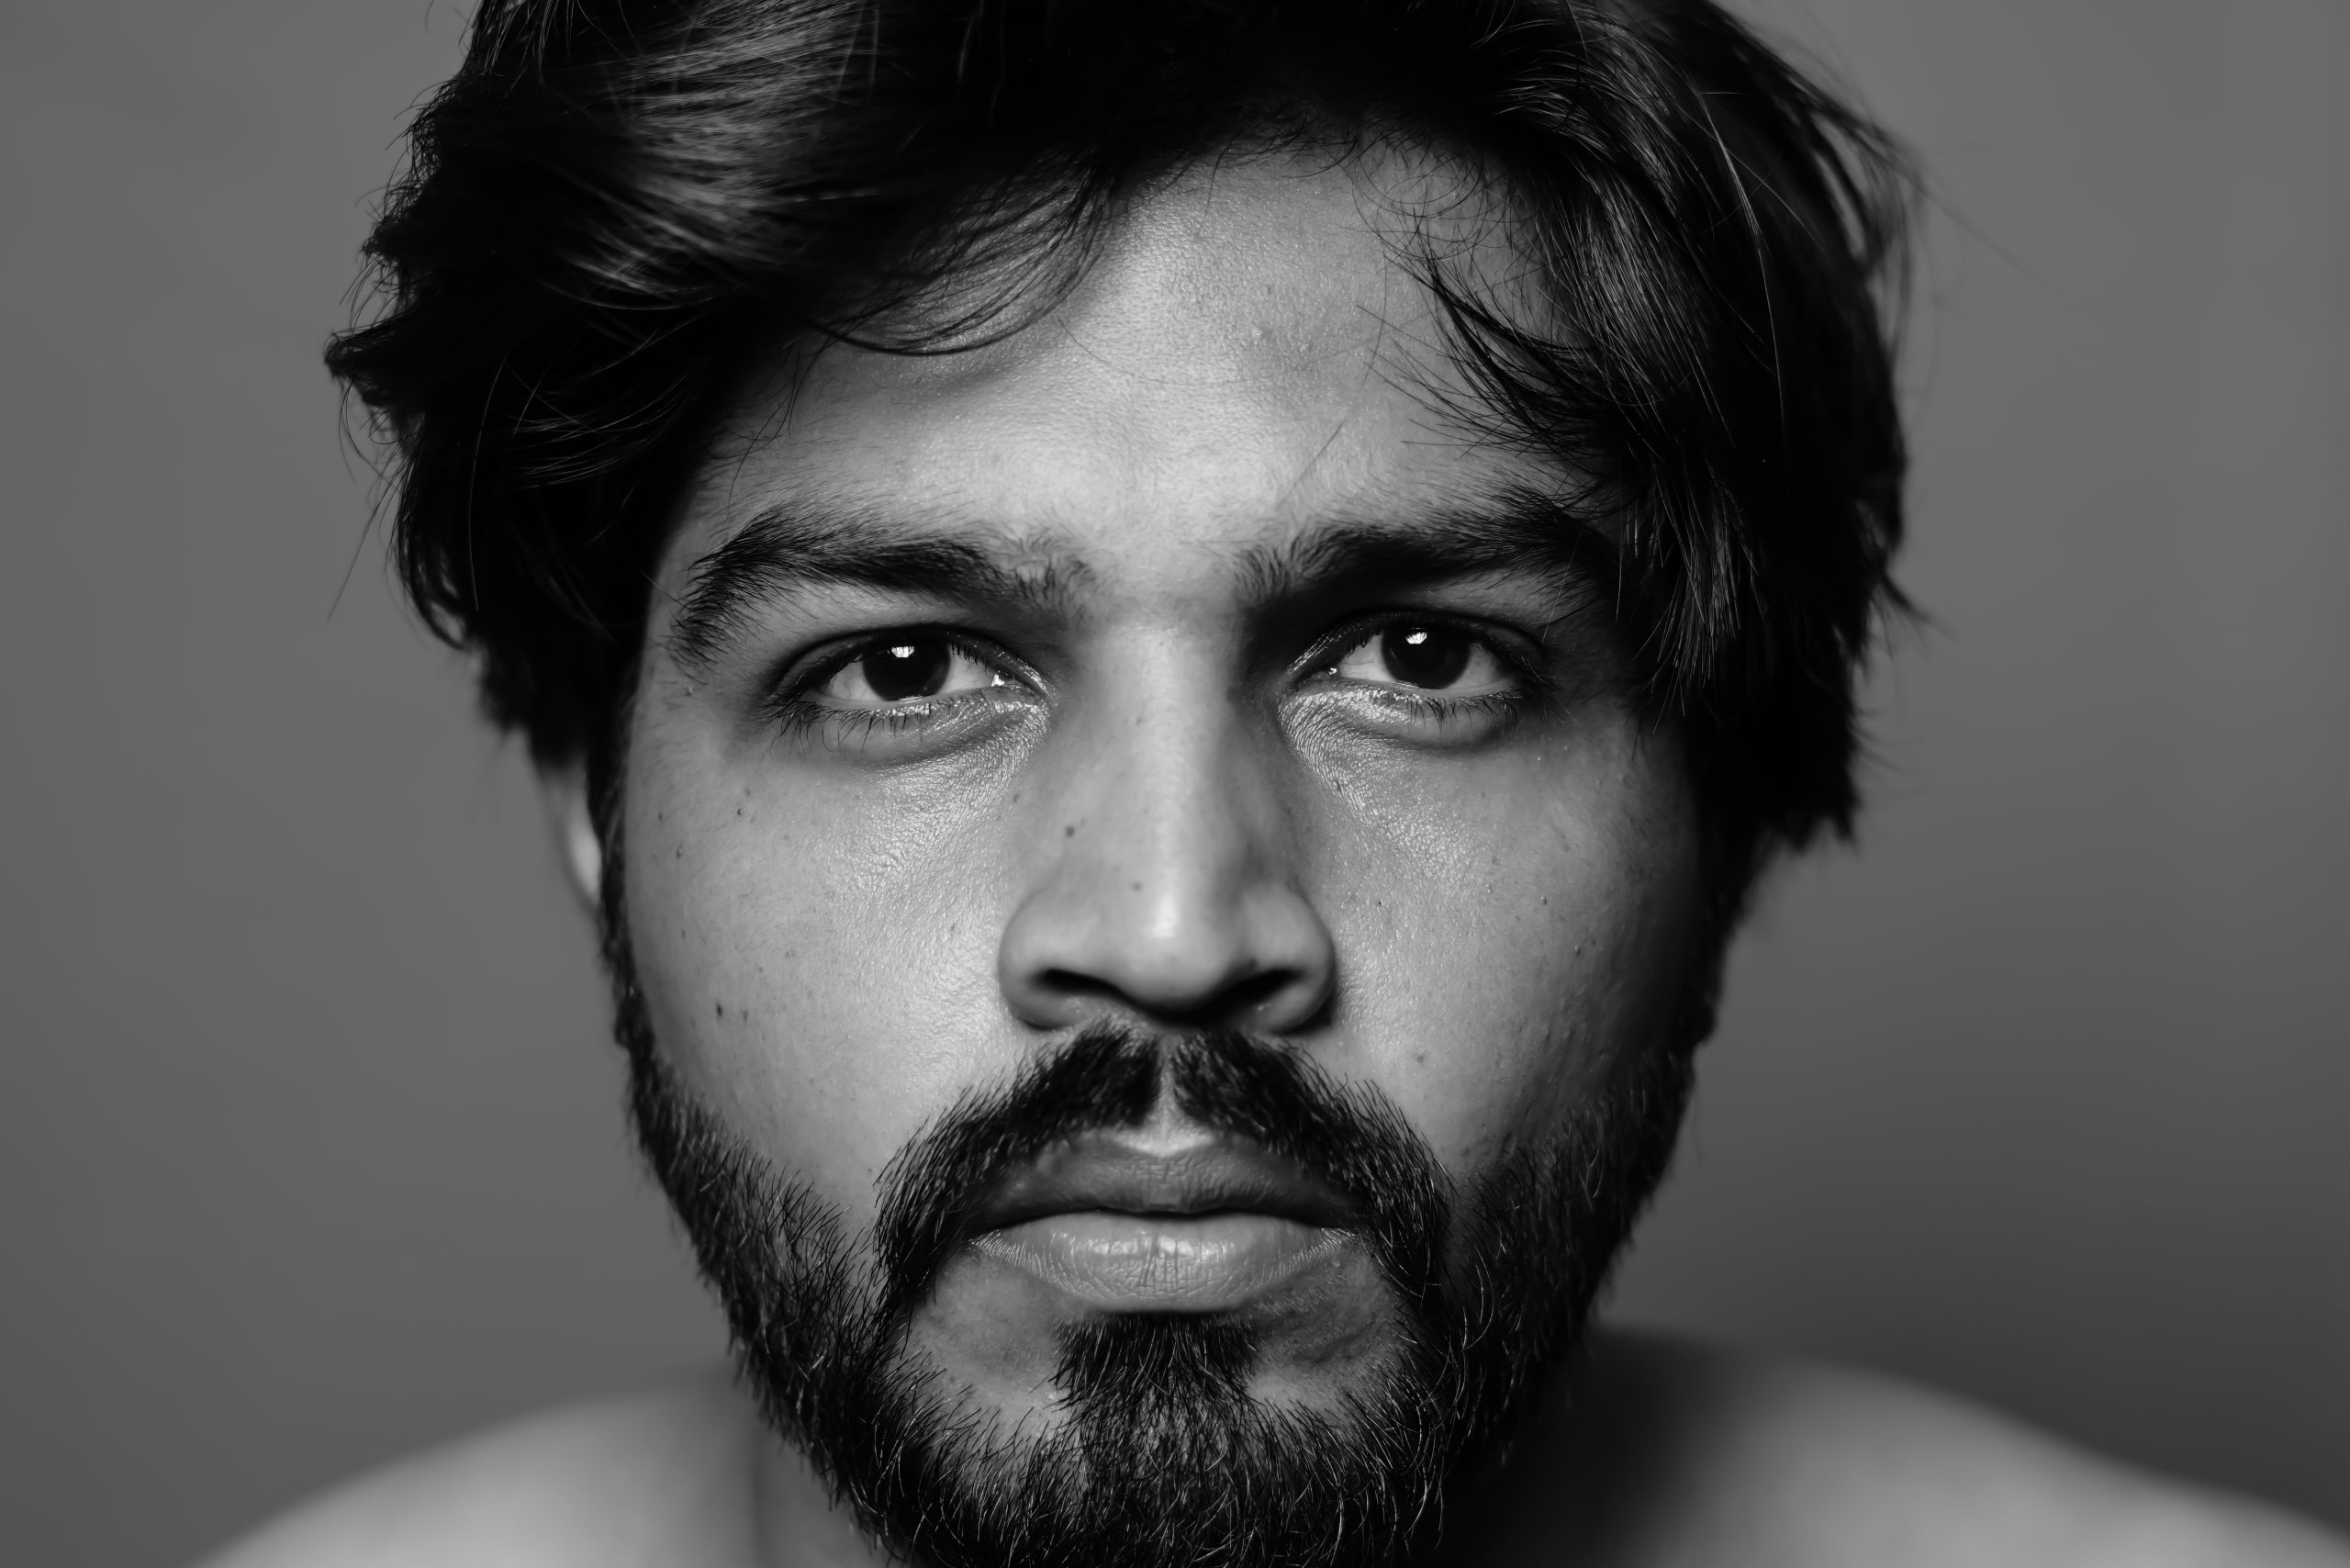 Indian Man Portrait on Black and White